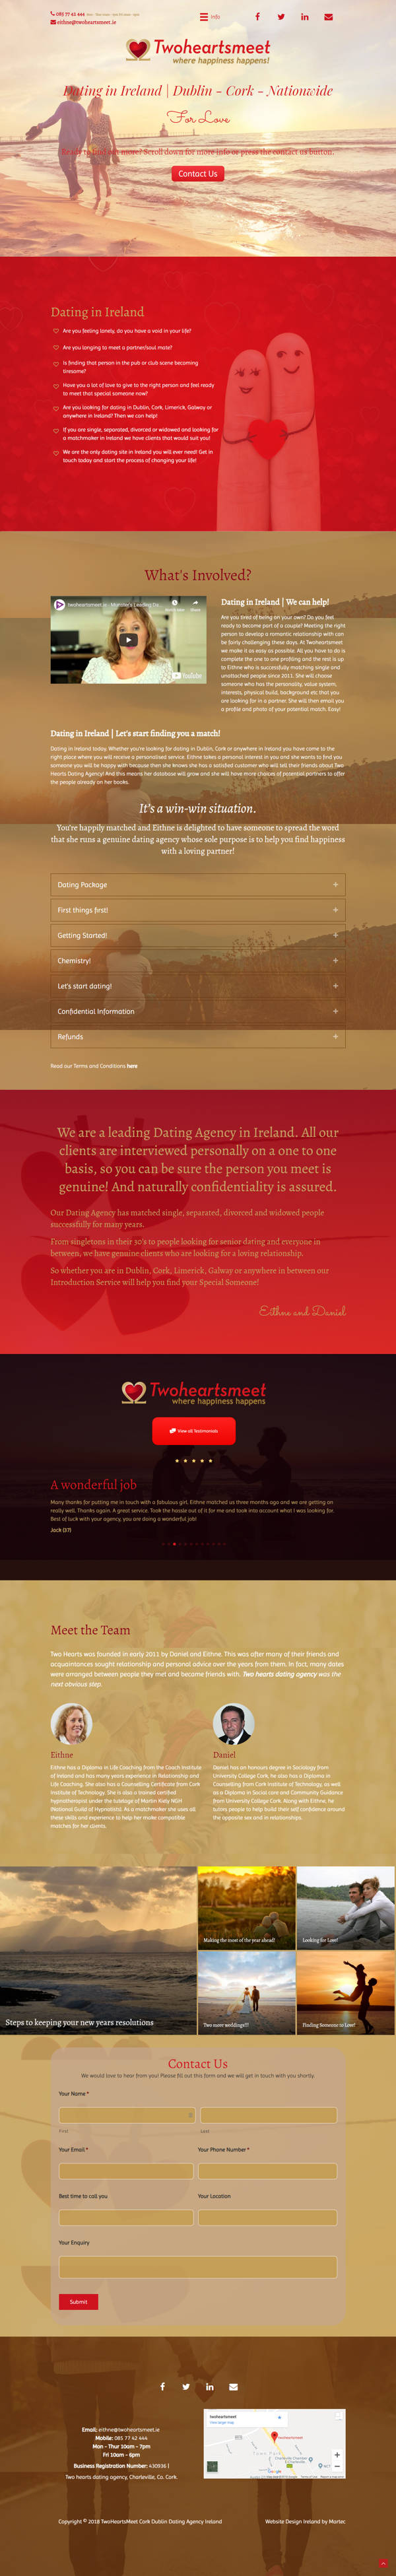 Speed Dating and online dating Ireland - tonyshirley.co.uk